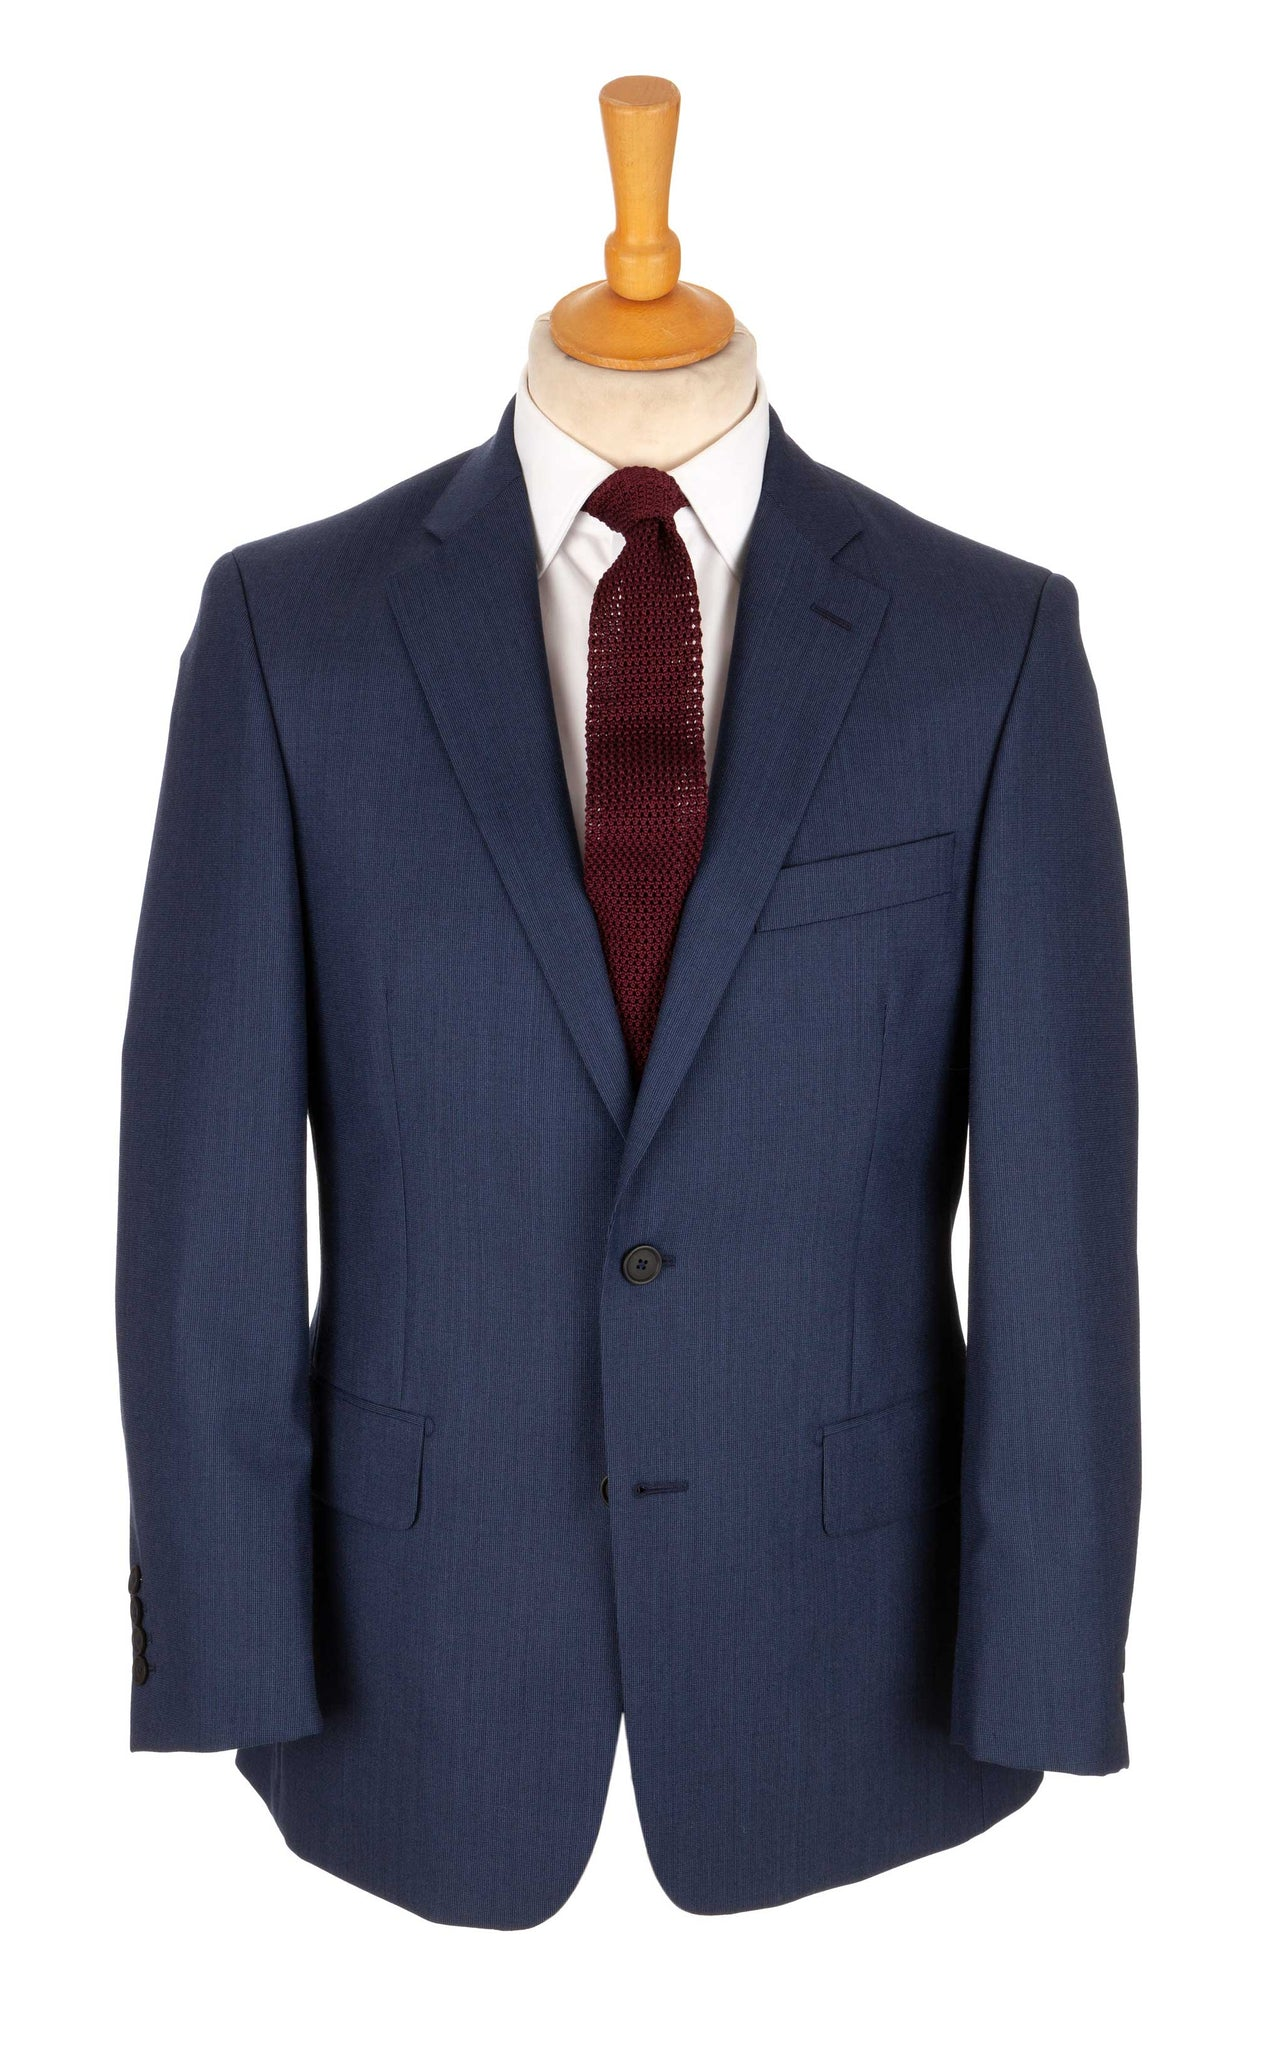 Regent Crow Two-Button Suit – Navy Wool - Regent Tailoring